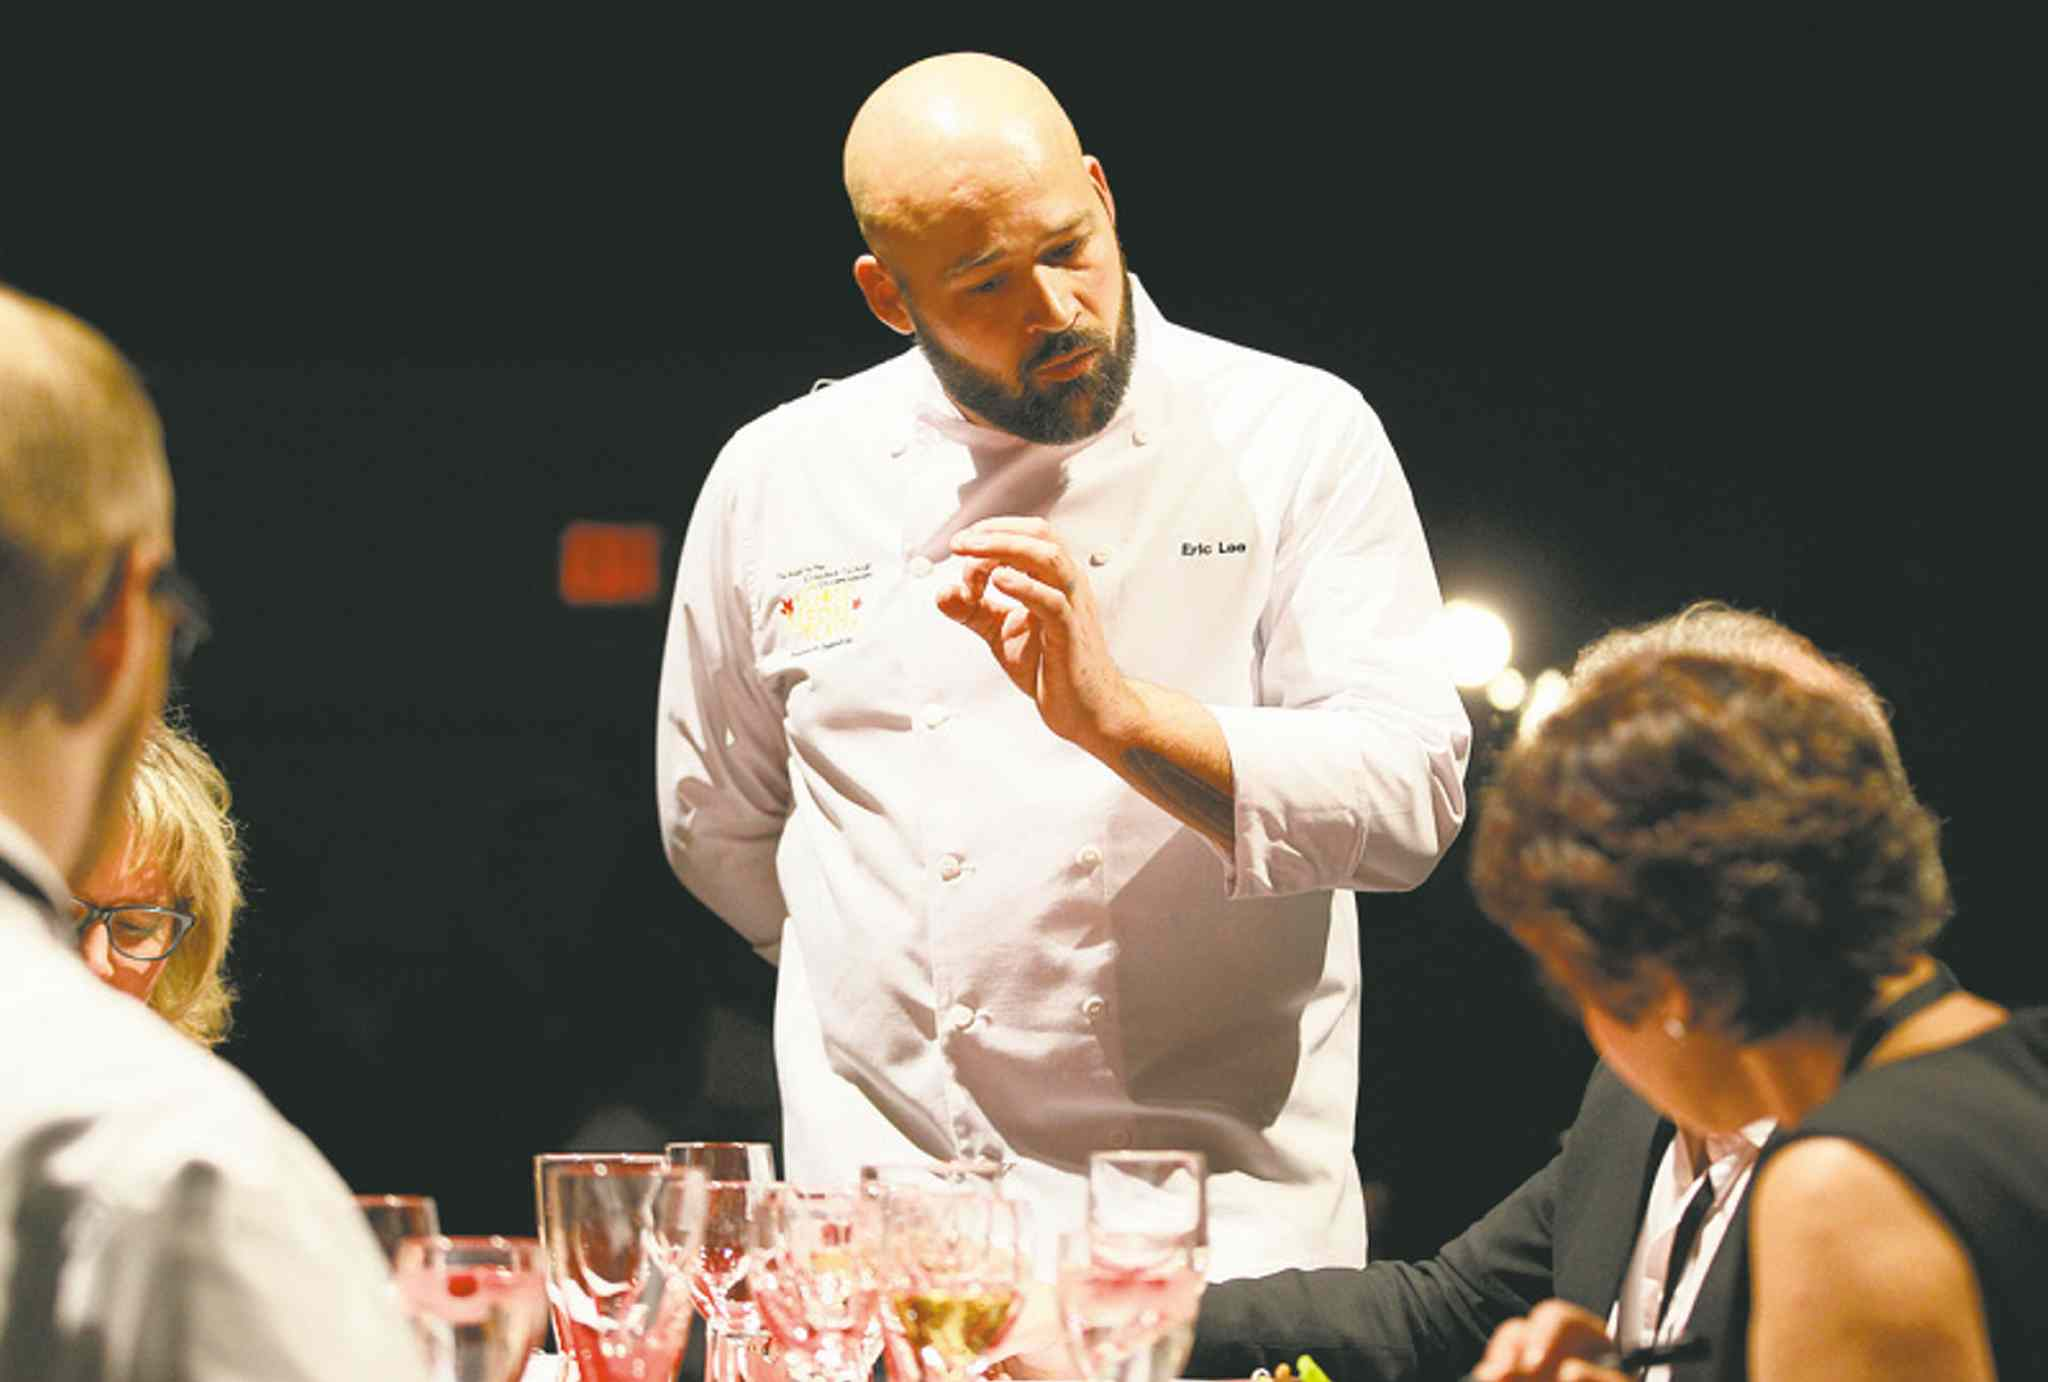 Chef Eric Lee presents his entry to the judging panel. JOHN WOODS / WINNIPEG FREE PRESS